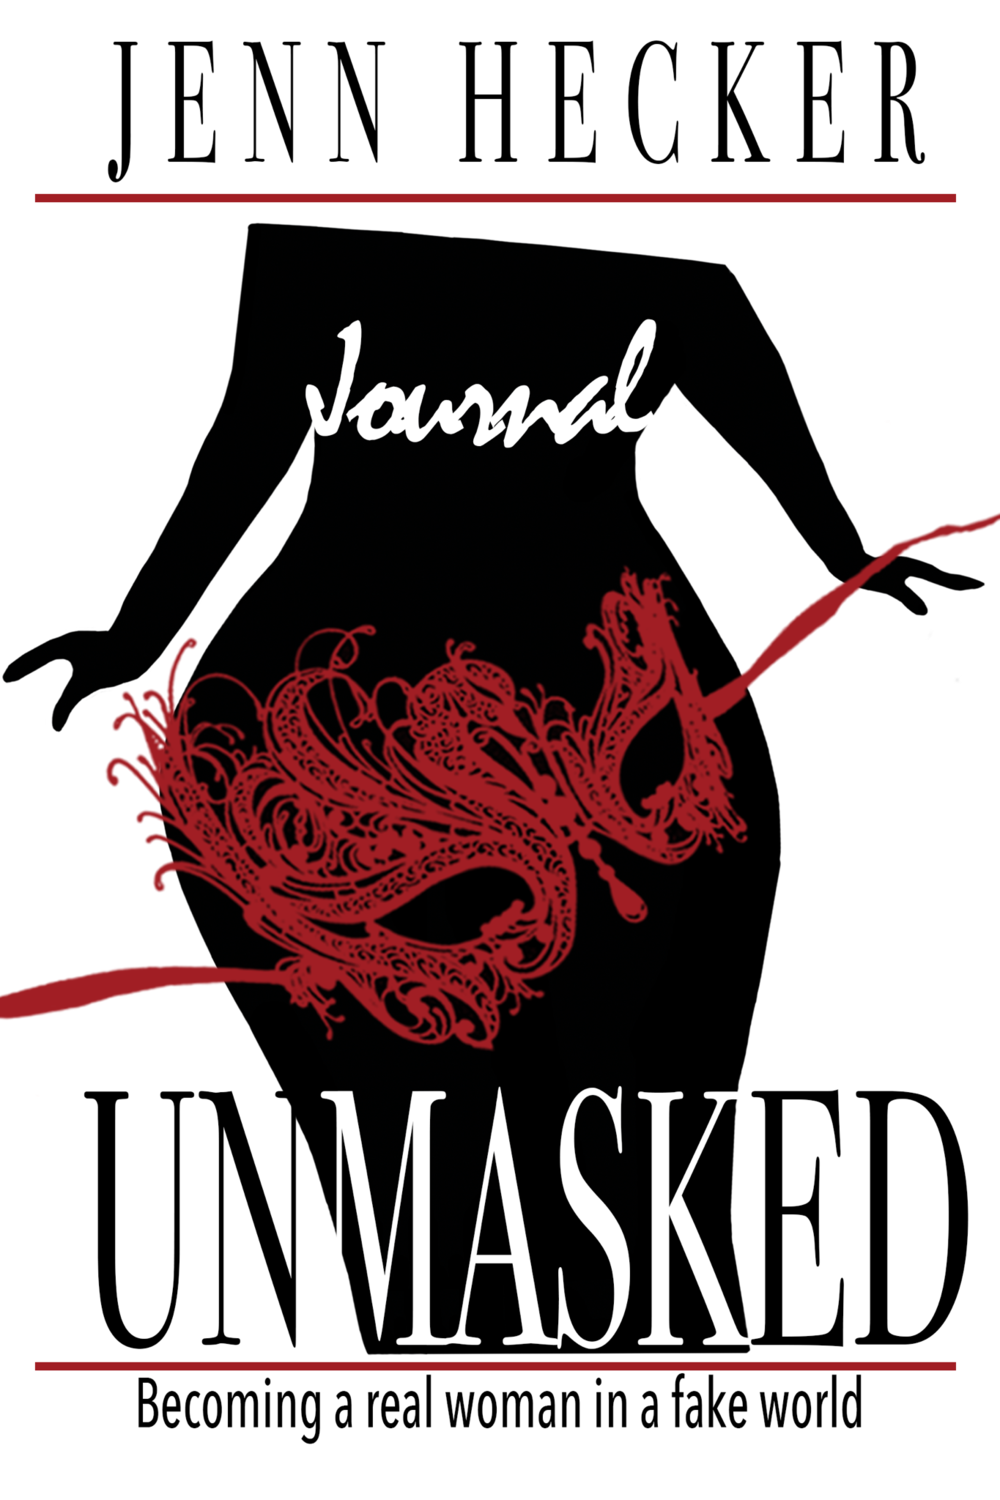 Unmasked: Becoming a real woman in a fake world (Paperback/Journal)